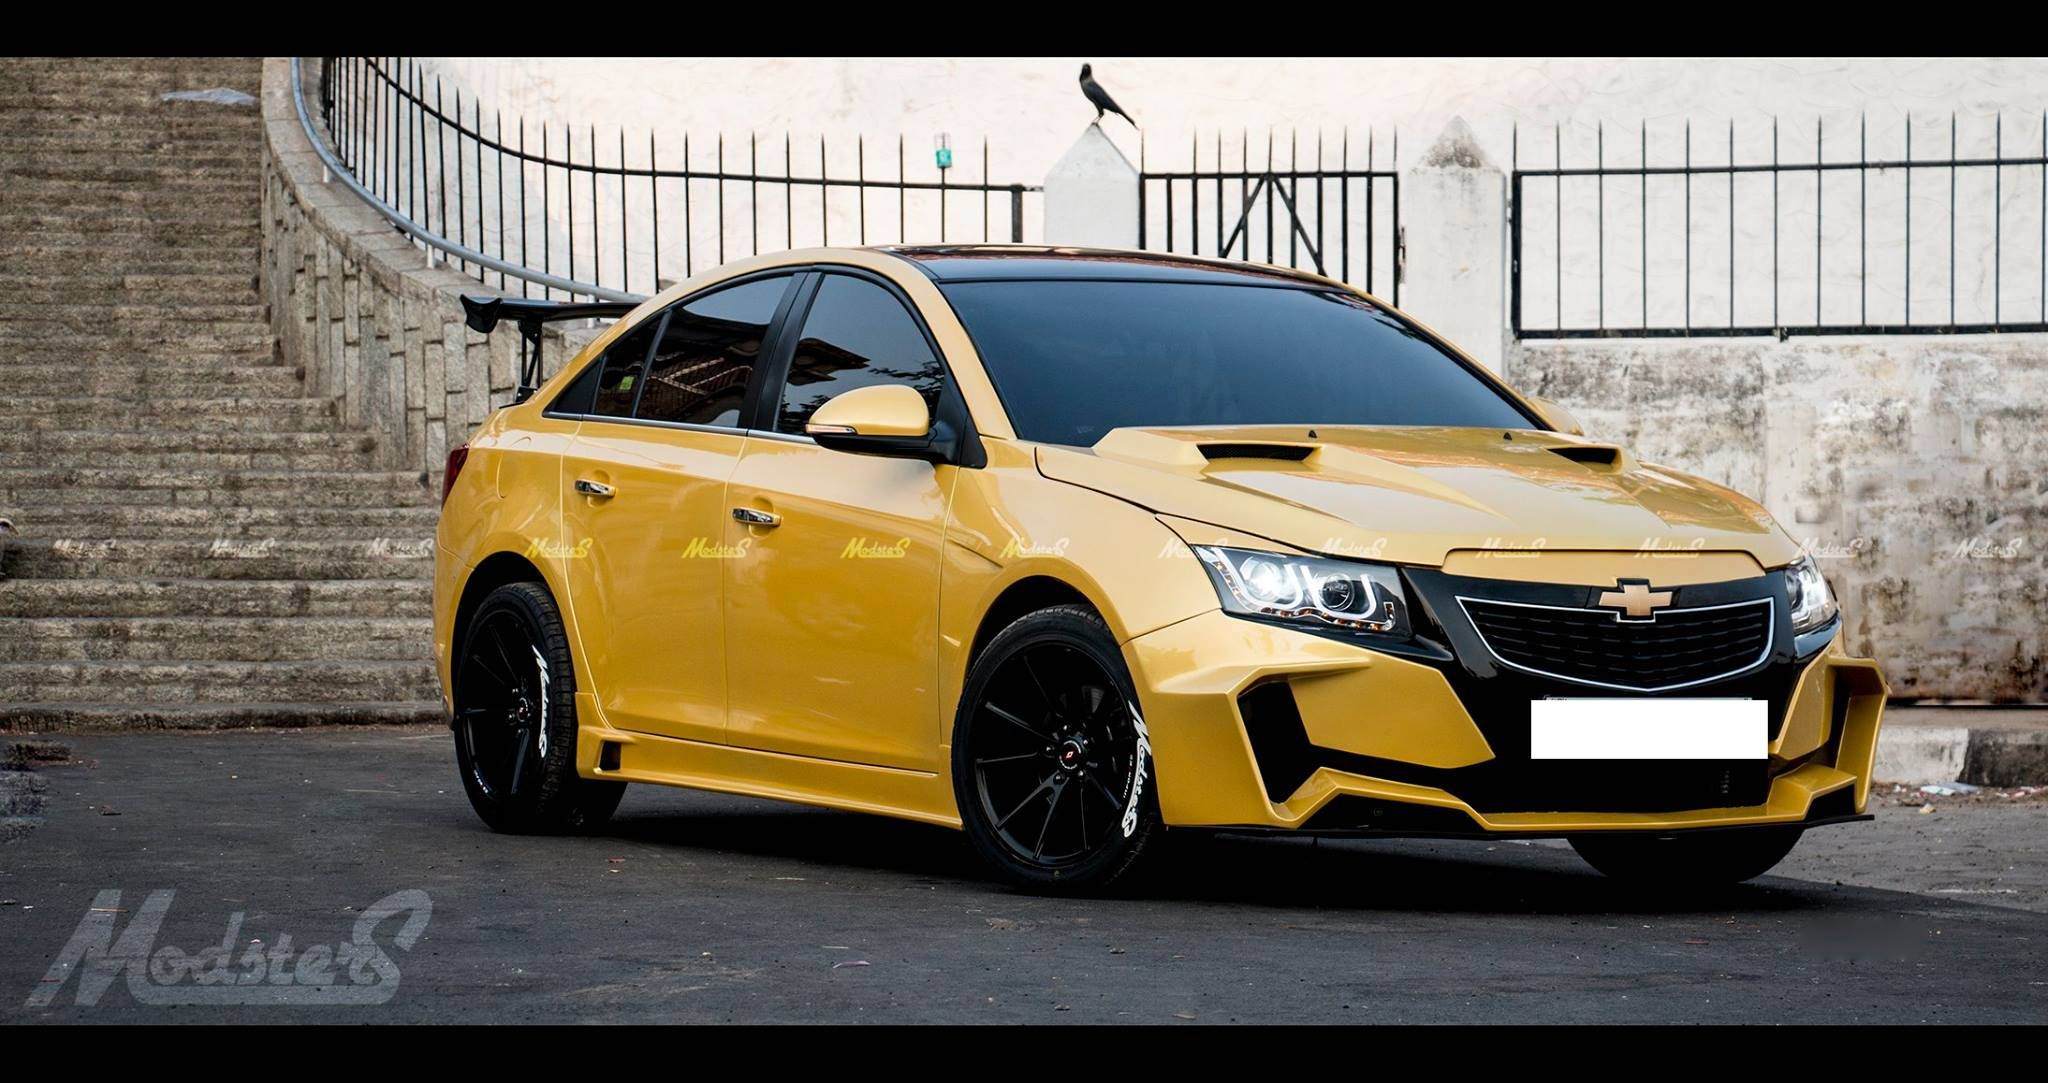 Chevrolet Cruze Project 'Yellow Transformer' In Images